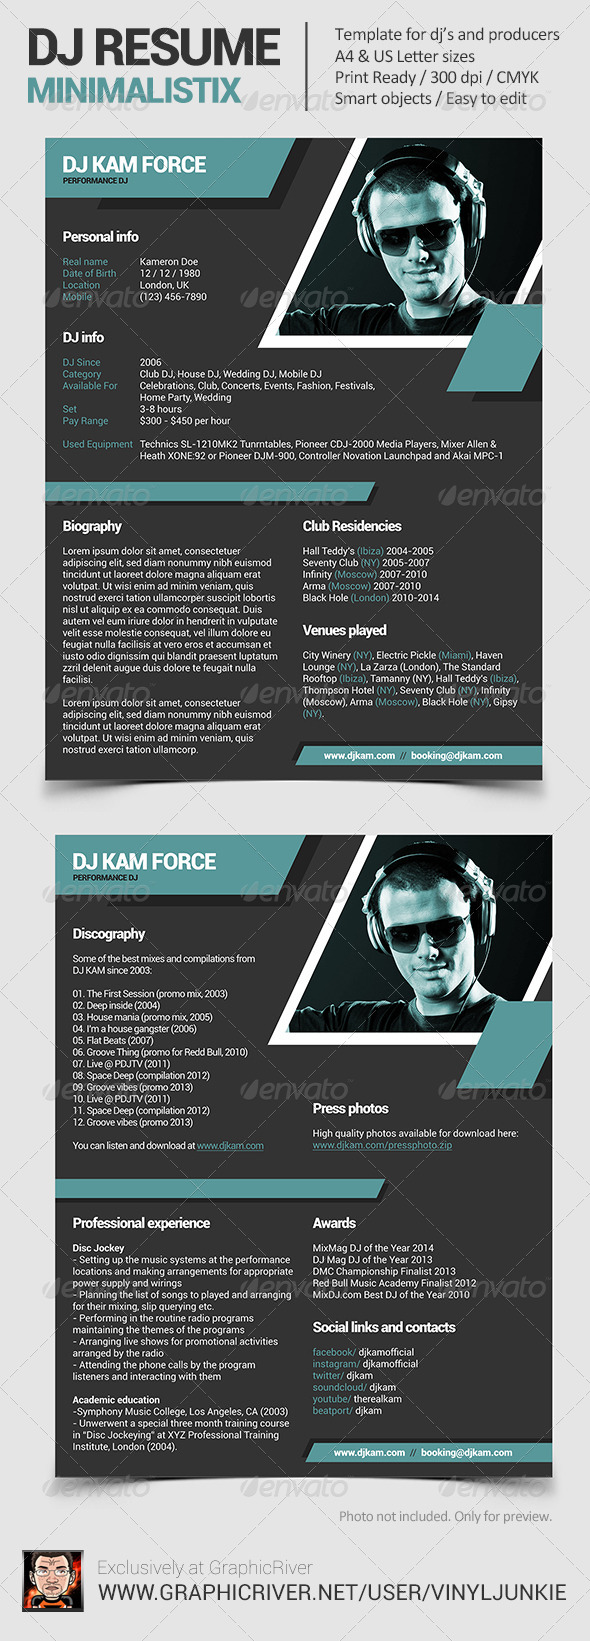 minimalistix dj resume press kit by vinyljunkie graphicriver